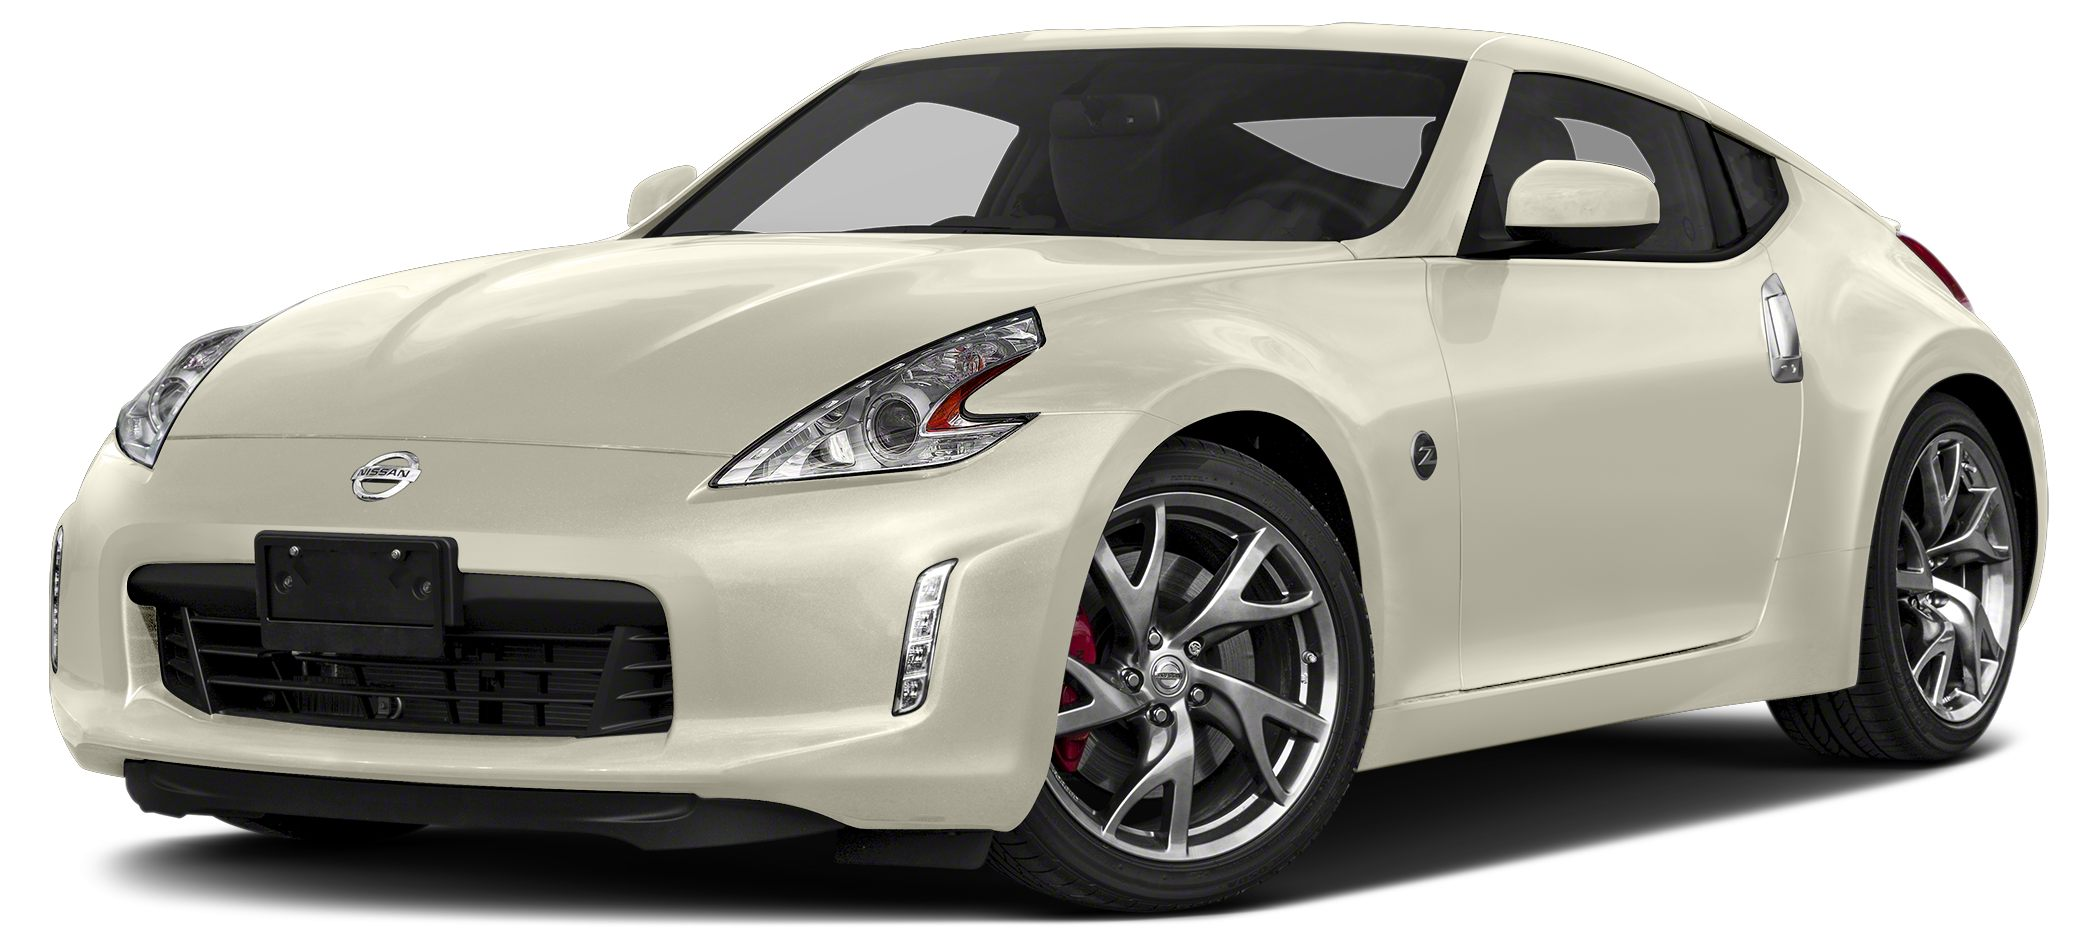 2017 Nissan 370Z Sport Bluetooth This 2017 Nissan 370Z Sport is Pearl White This Nissan 370Z Sp